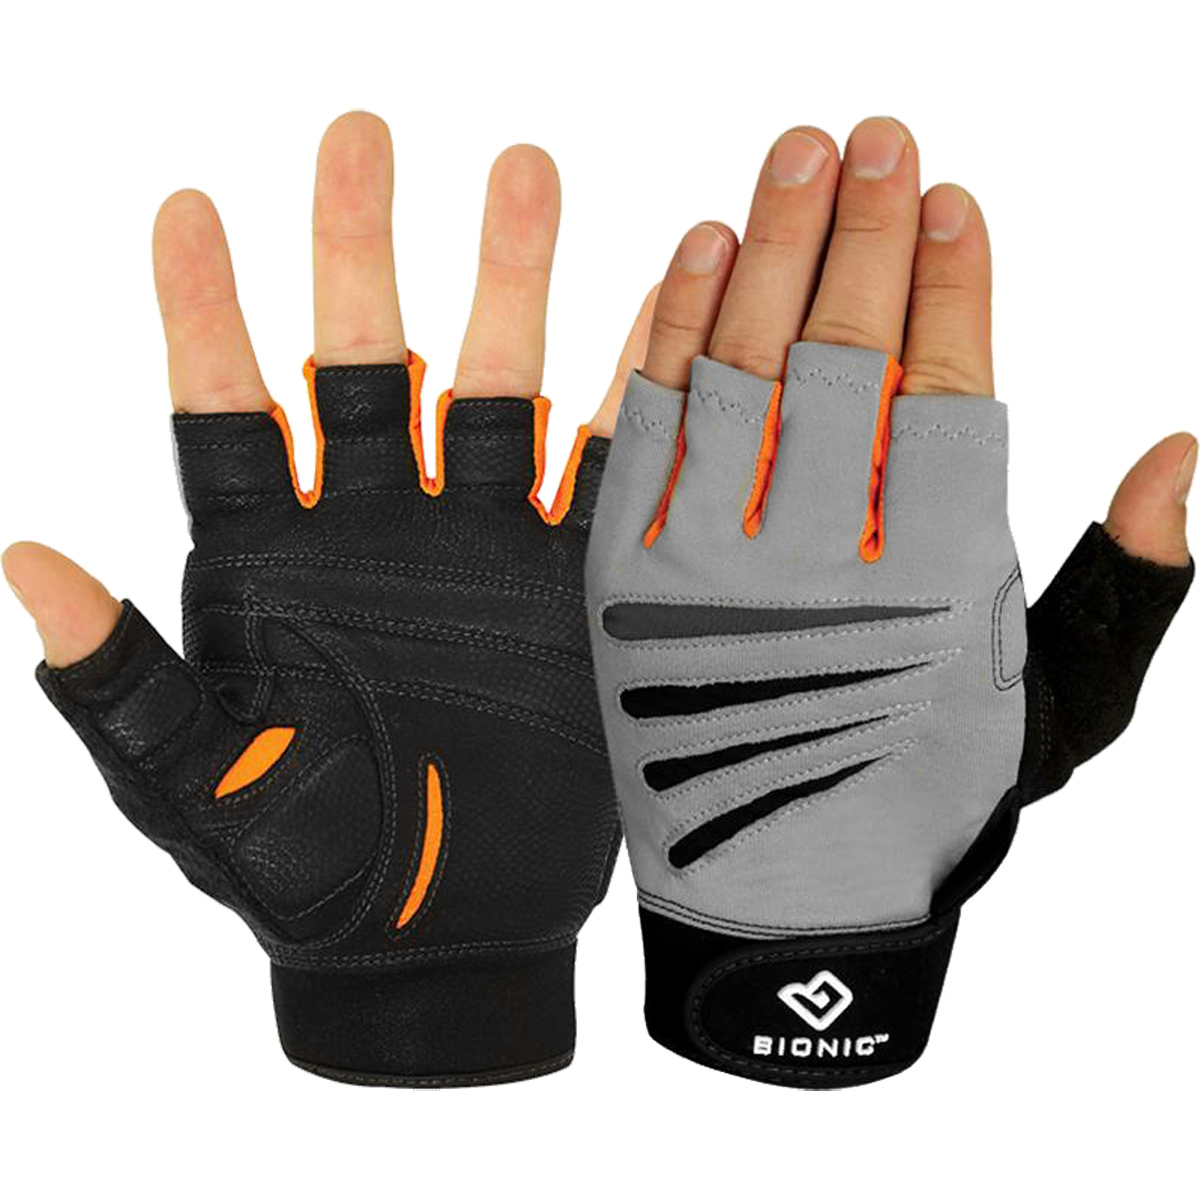 Men's Fingerless Cross Training Fitness Gloves (Pair) 2X-Large